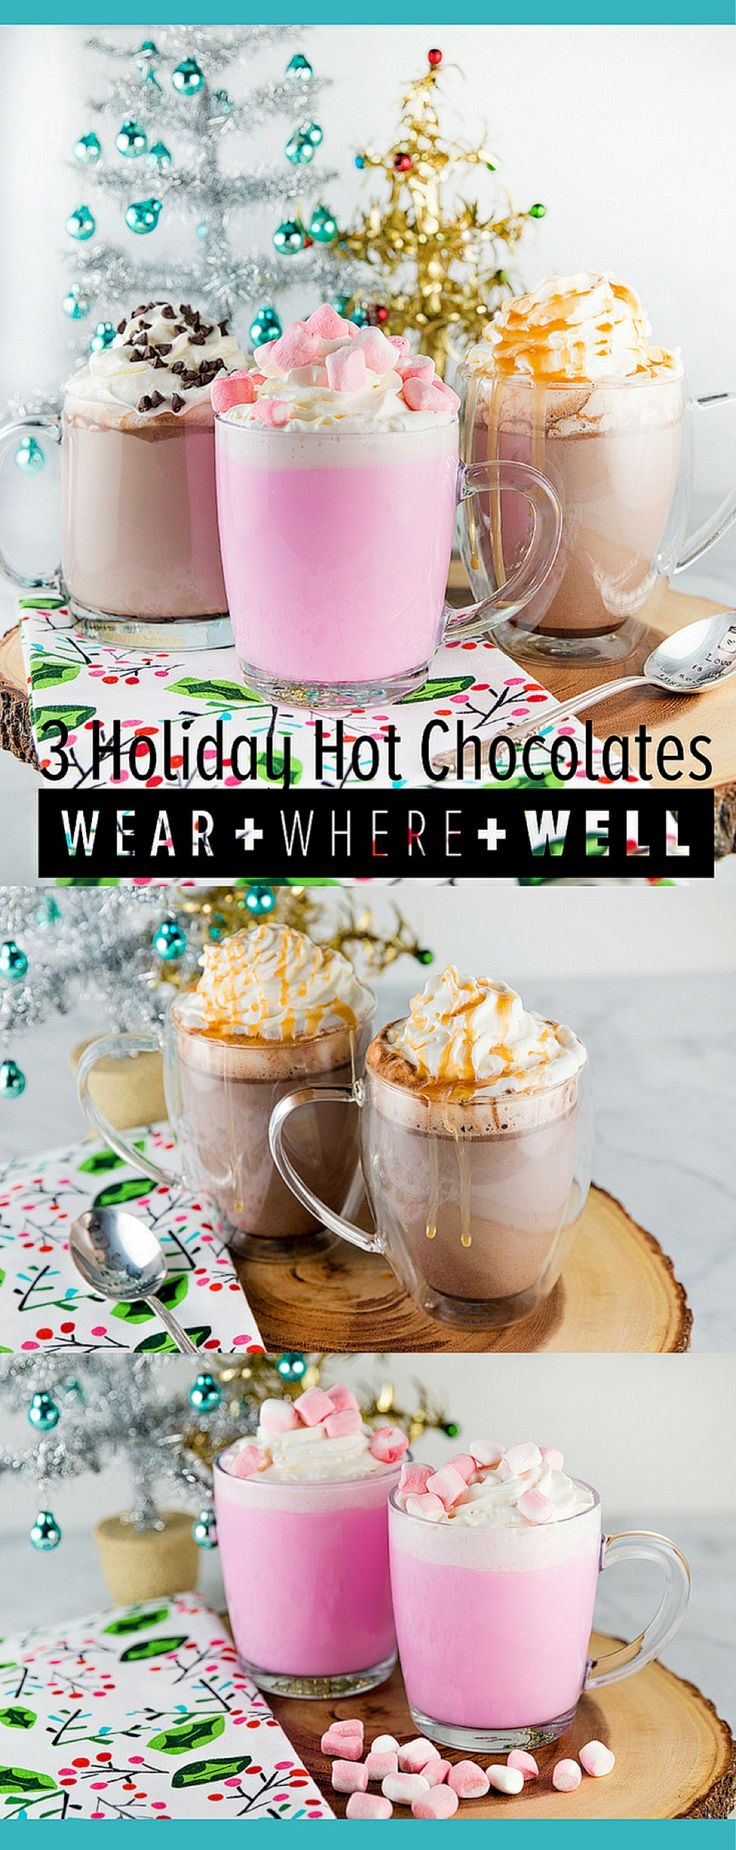 Three hot chocolate recipes for the holiday season! There is Caramel Hot Chocolate, Double the Chocolate Hot Chocolate and Peppermint White Chocolate Hot Chocolate